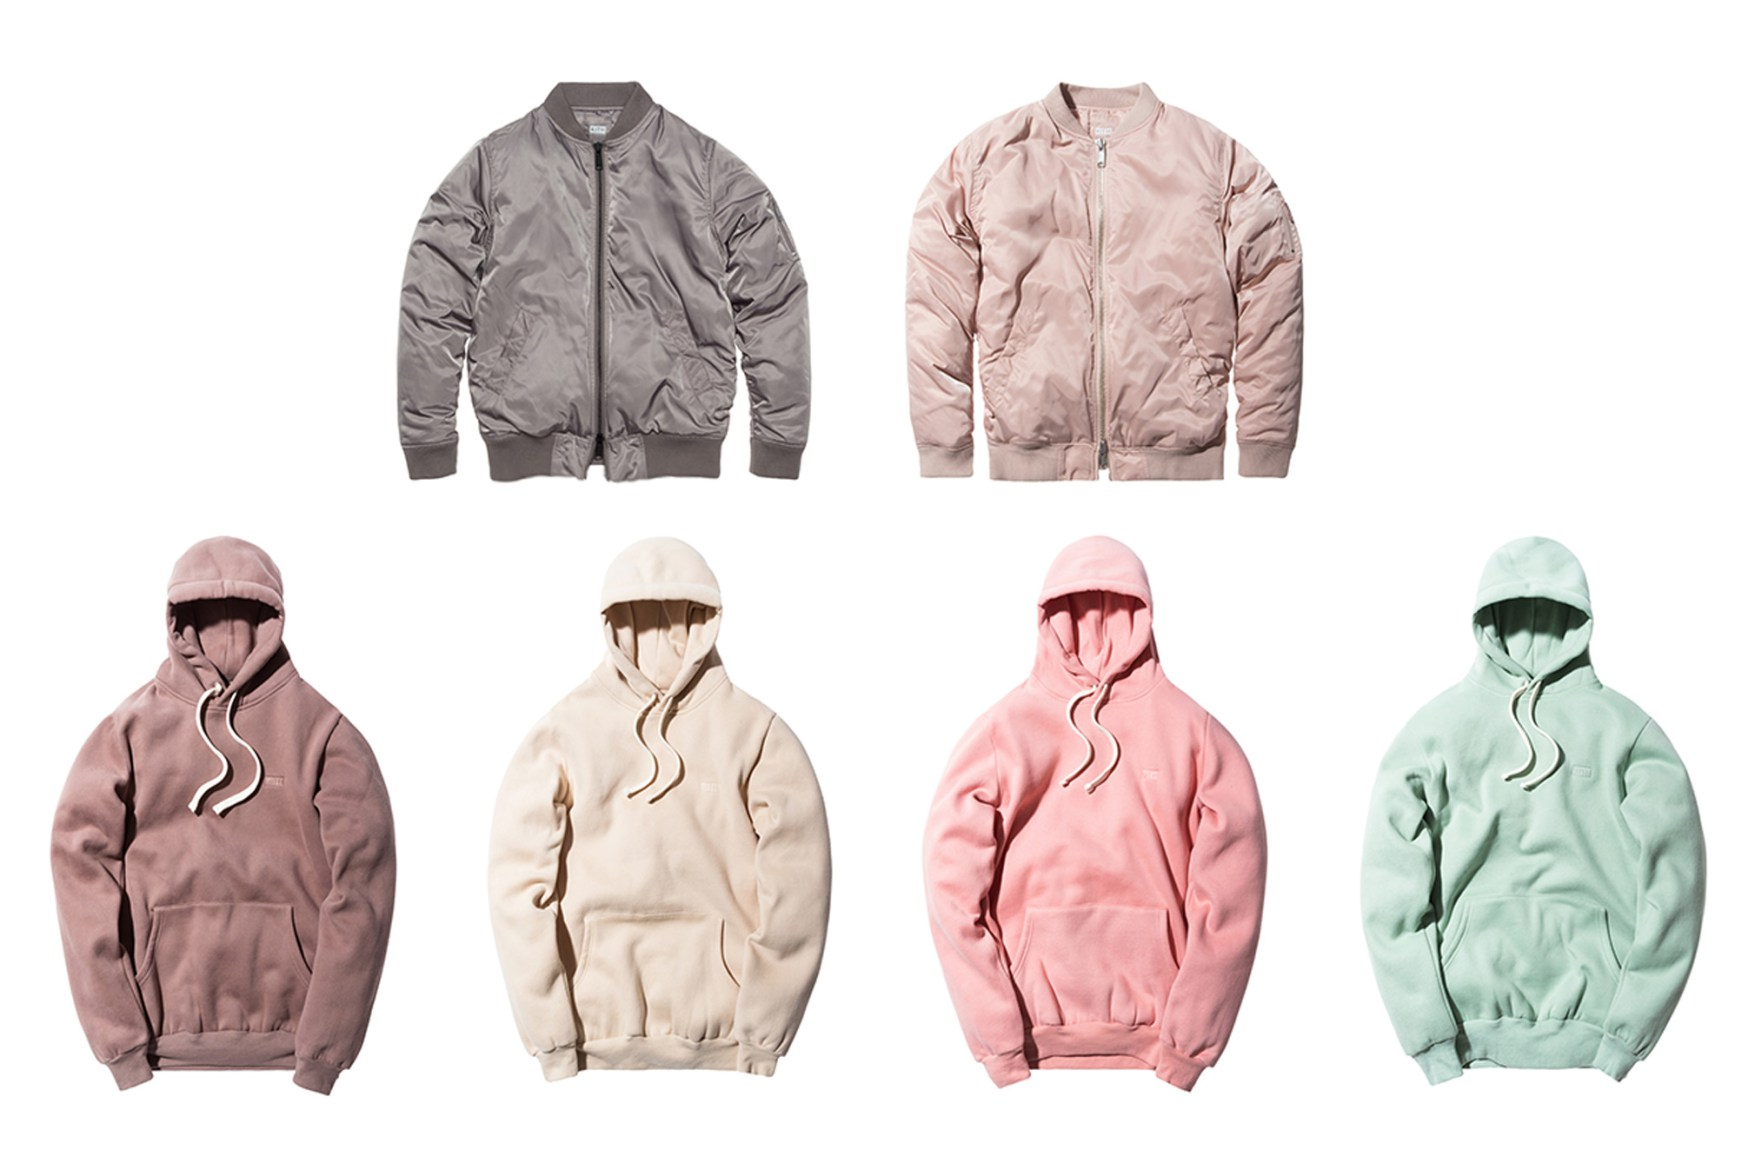 KITH dévoile le second volet de sa collection